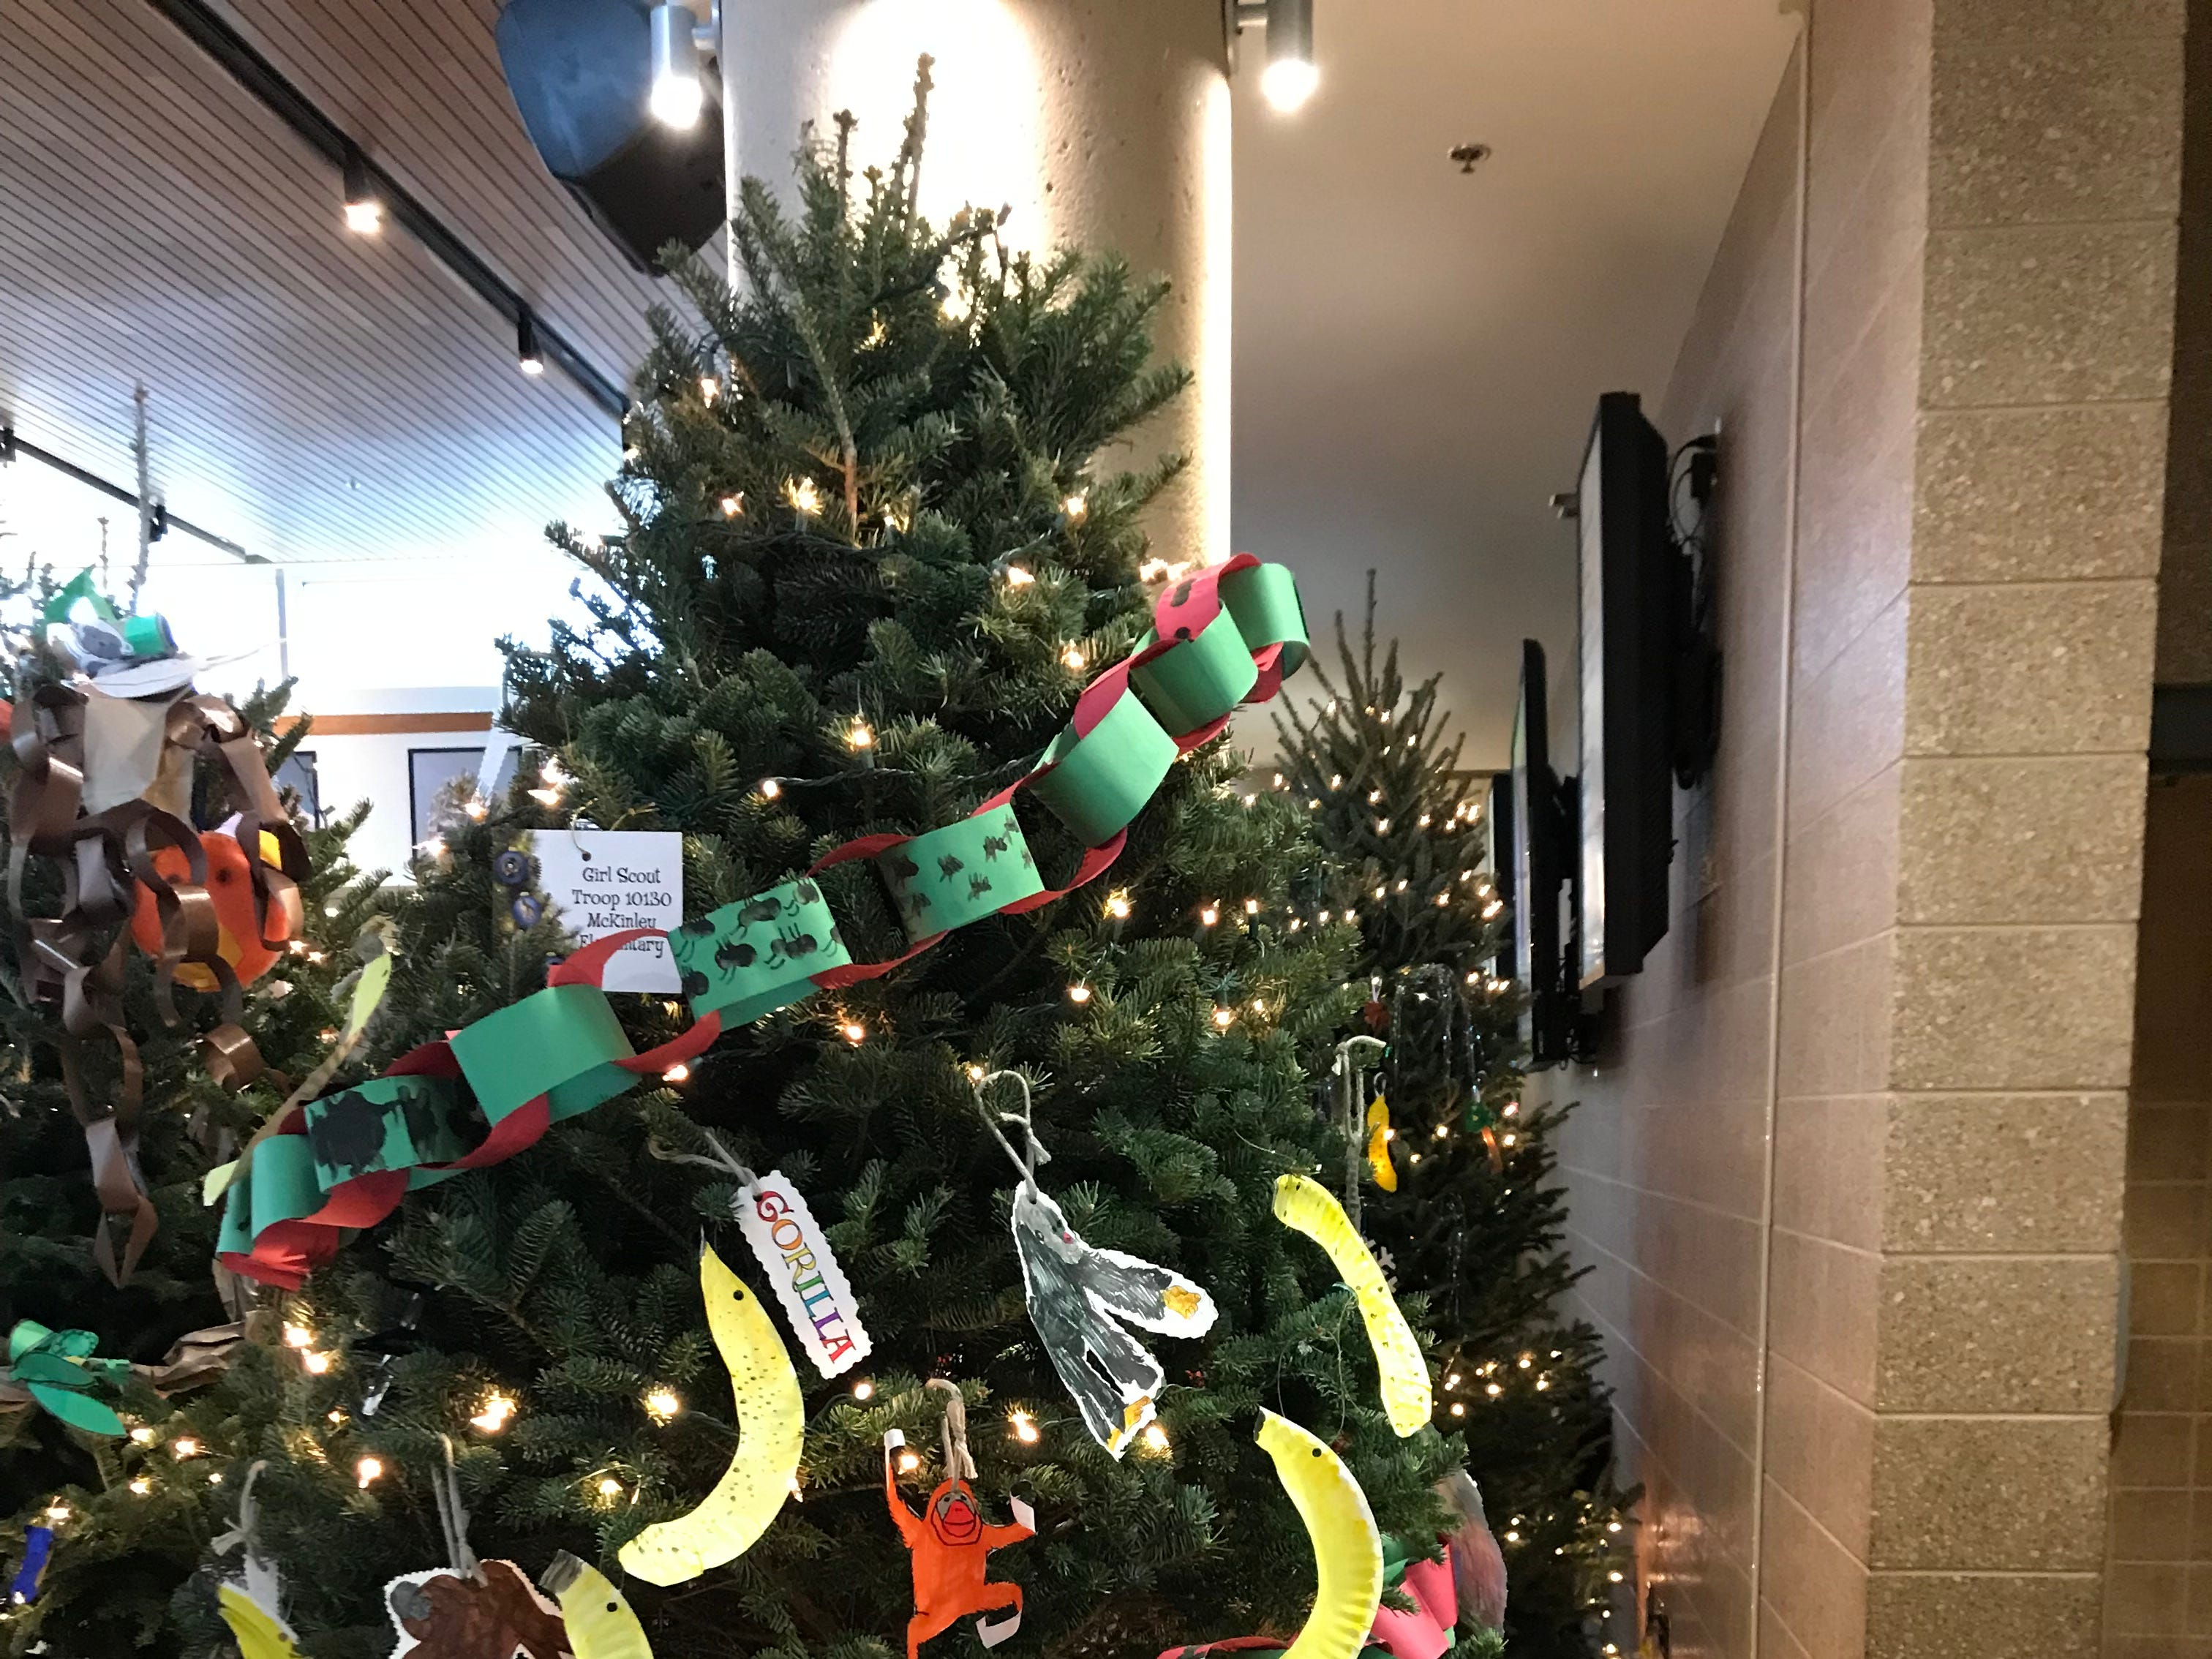 McKinley Girl Scouts decorated this tree in the primate area of the Zoological Society's Christmas tree display.